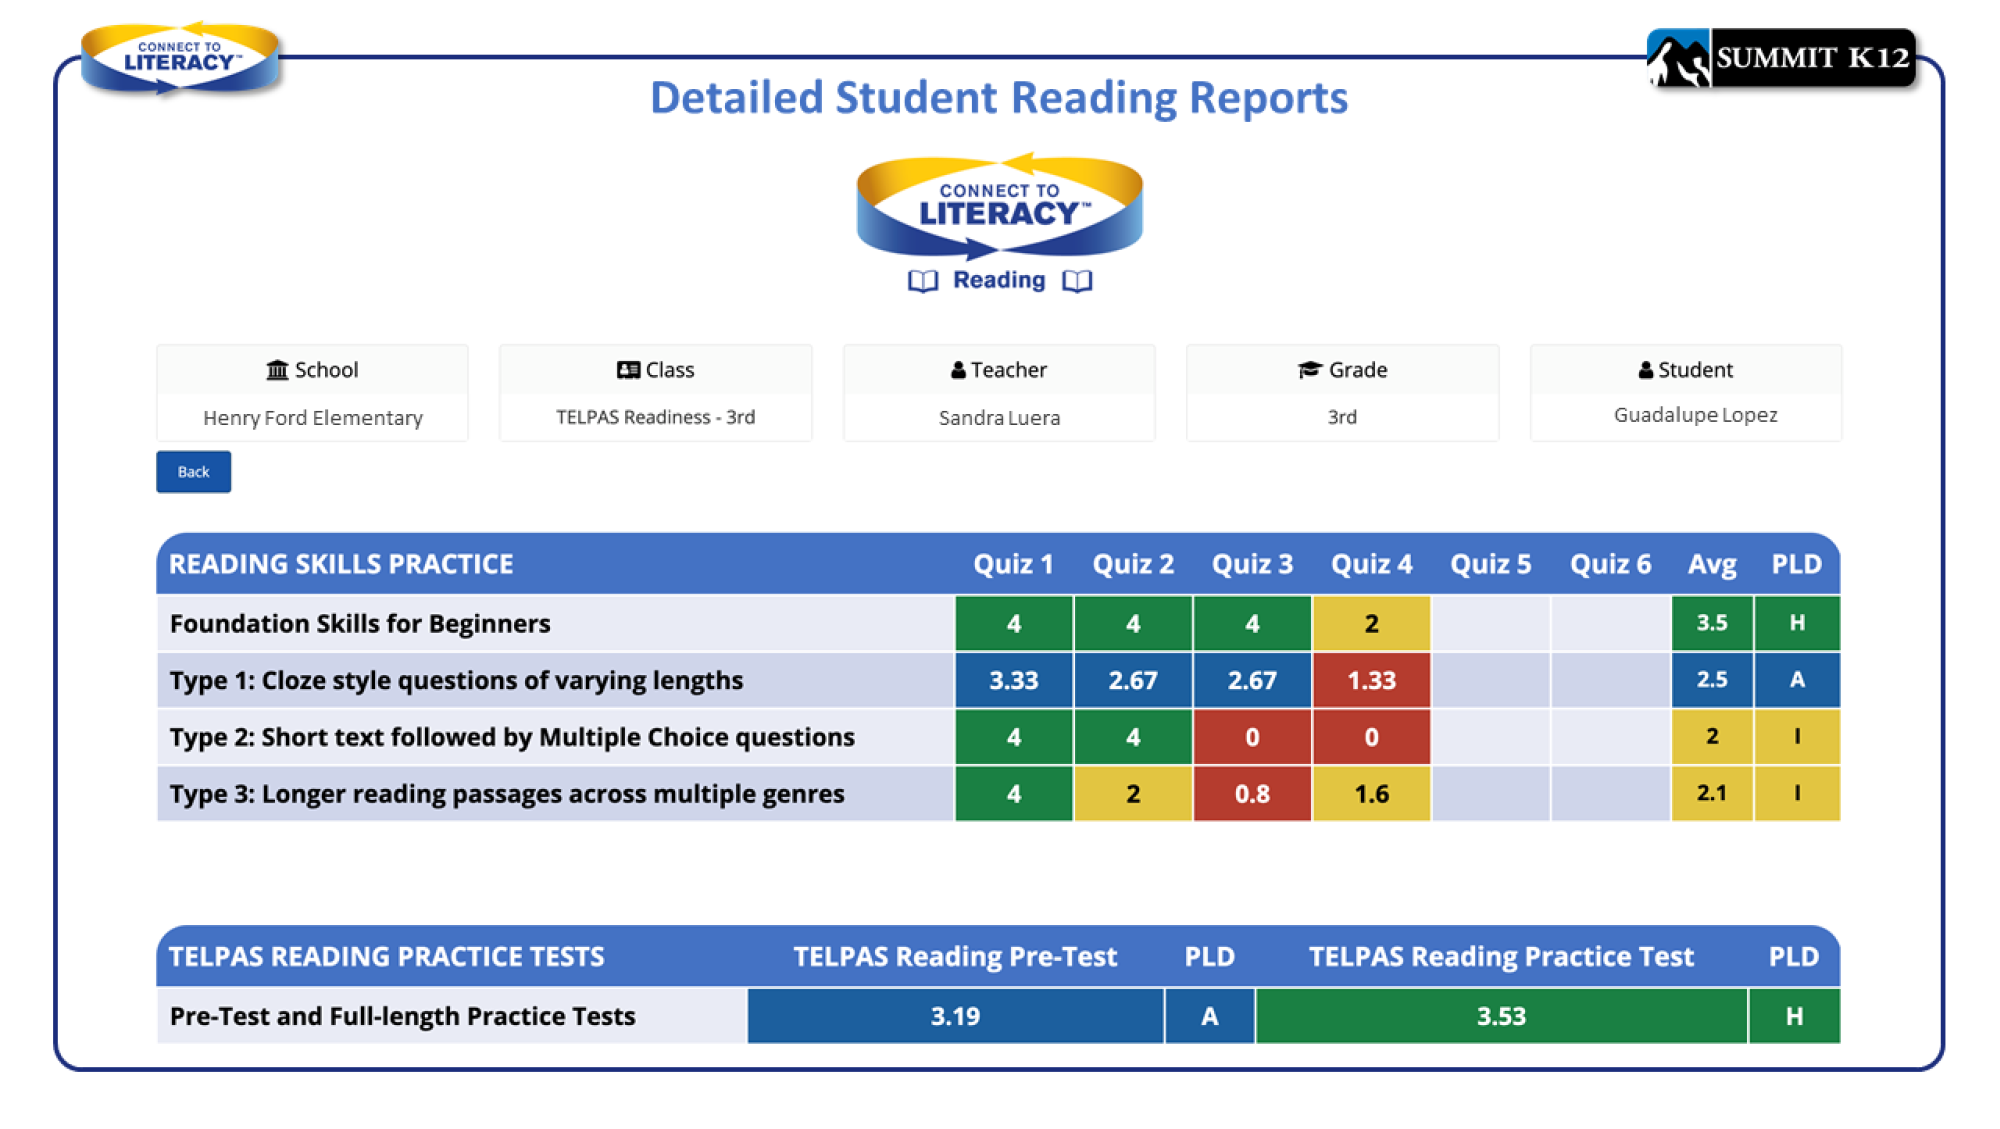 Detailed Student Reading Reports